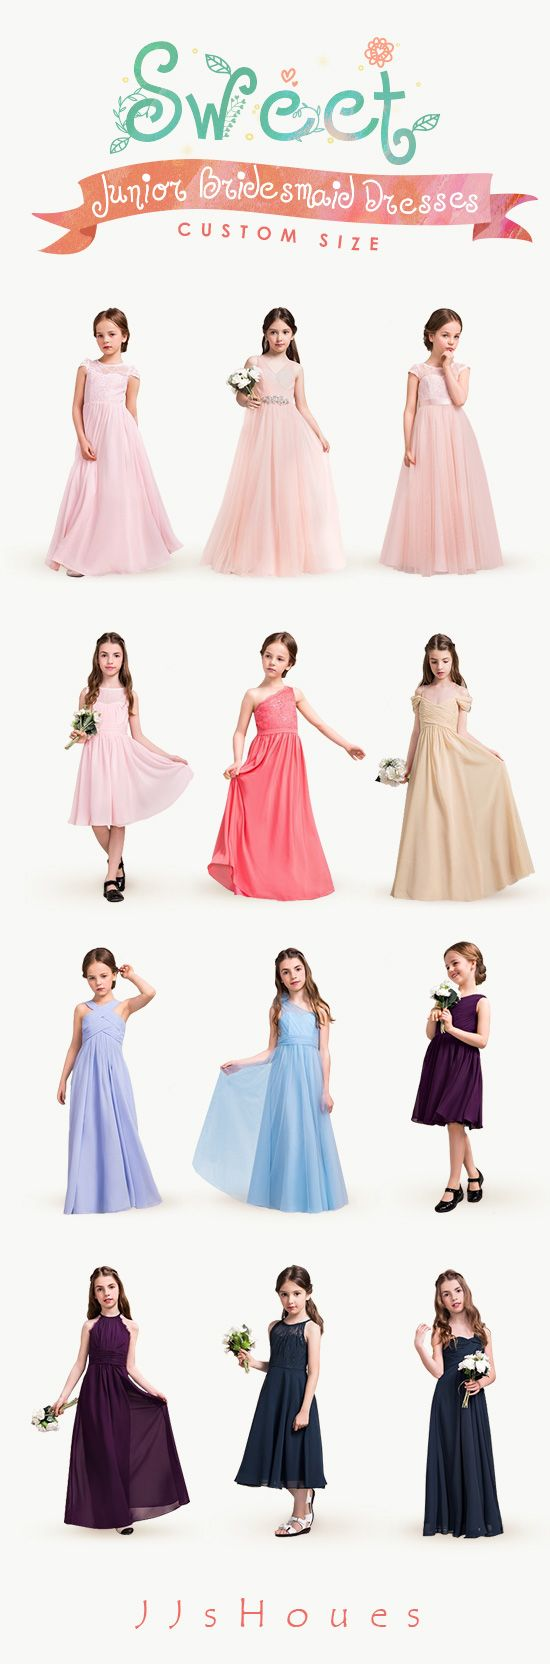 Sweet Junior Bridesmaid Dresses! CUSTOM SIZE! #Bridesmaiddresses ...